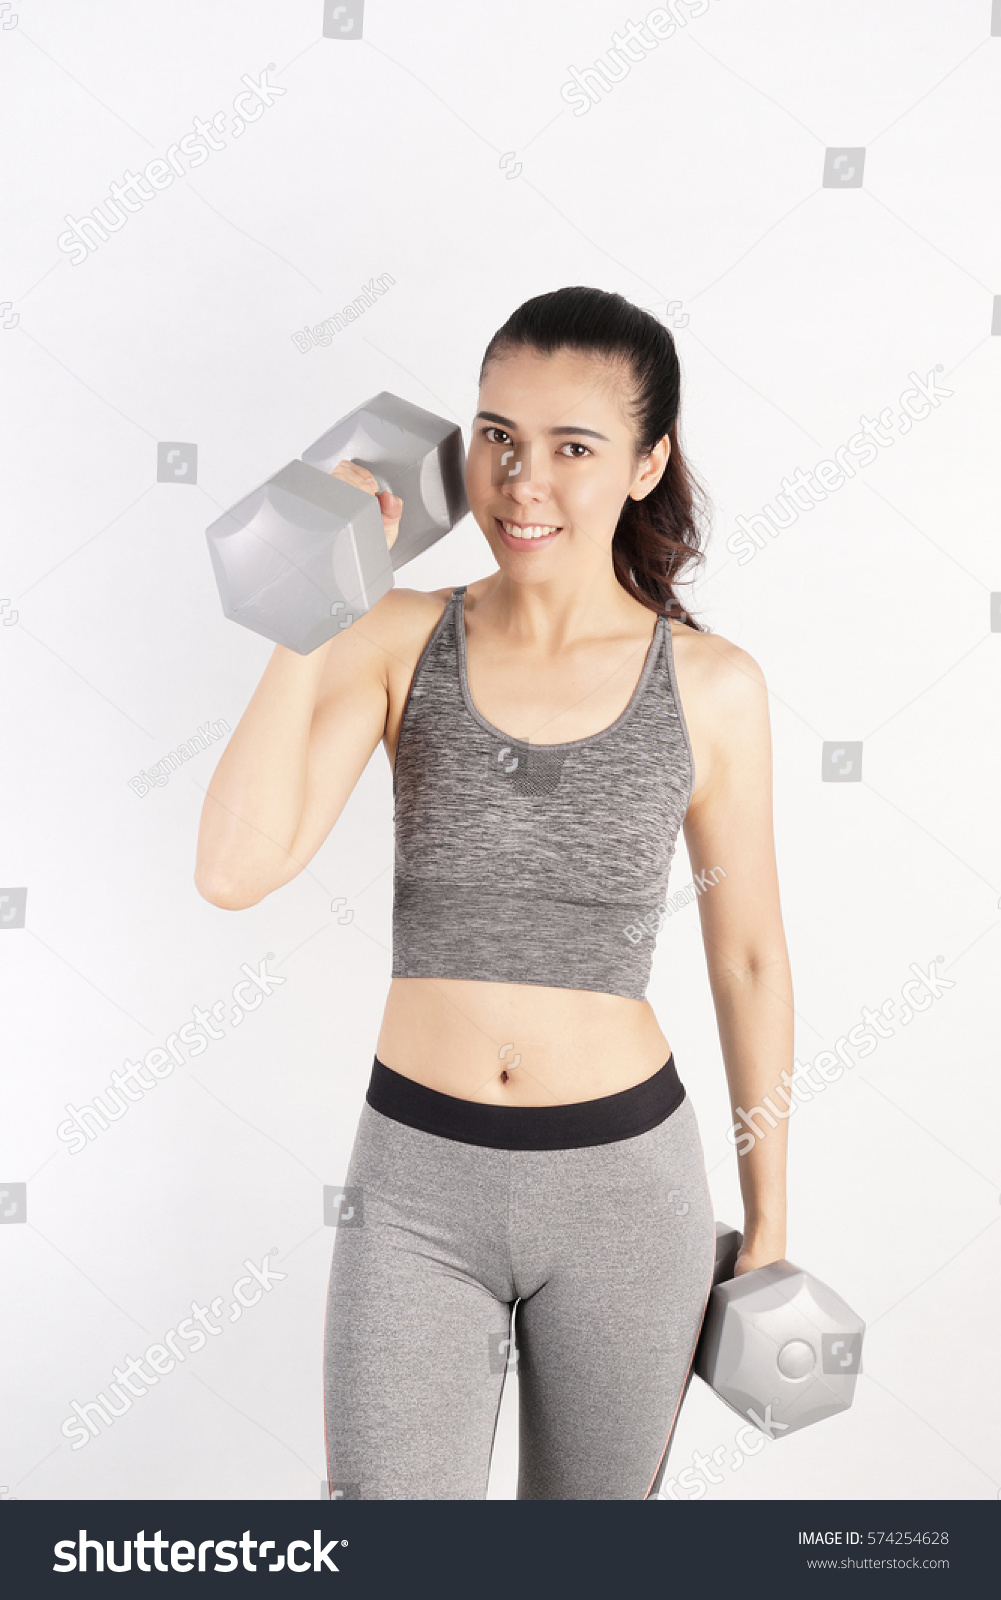 Healthy Woman Holding Dumbbell Workout Home Stock Photo